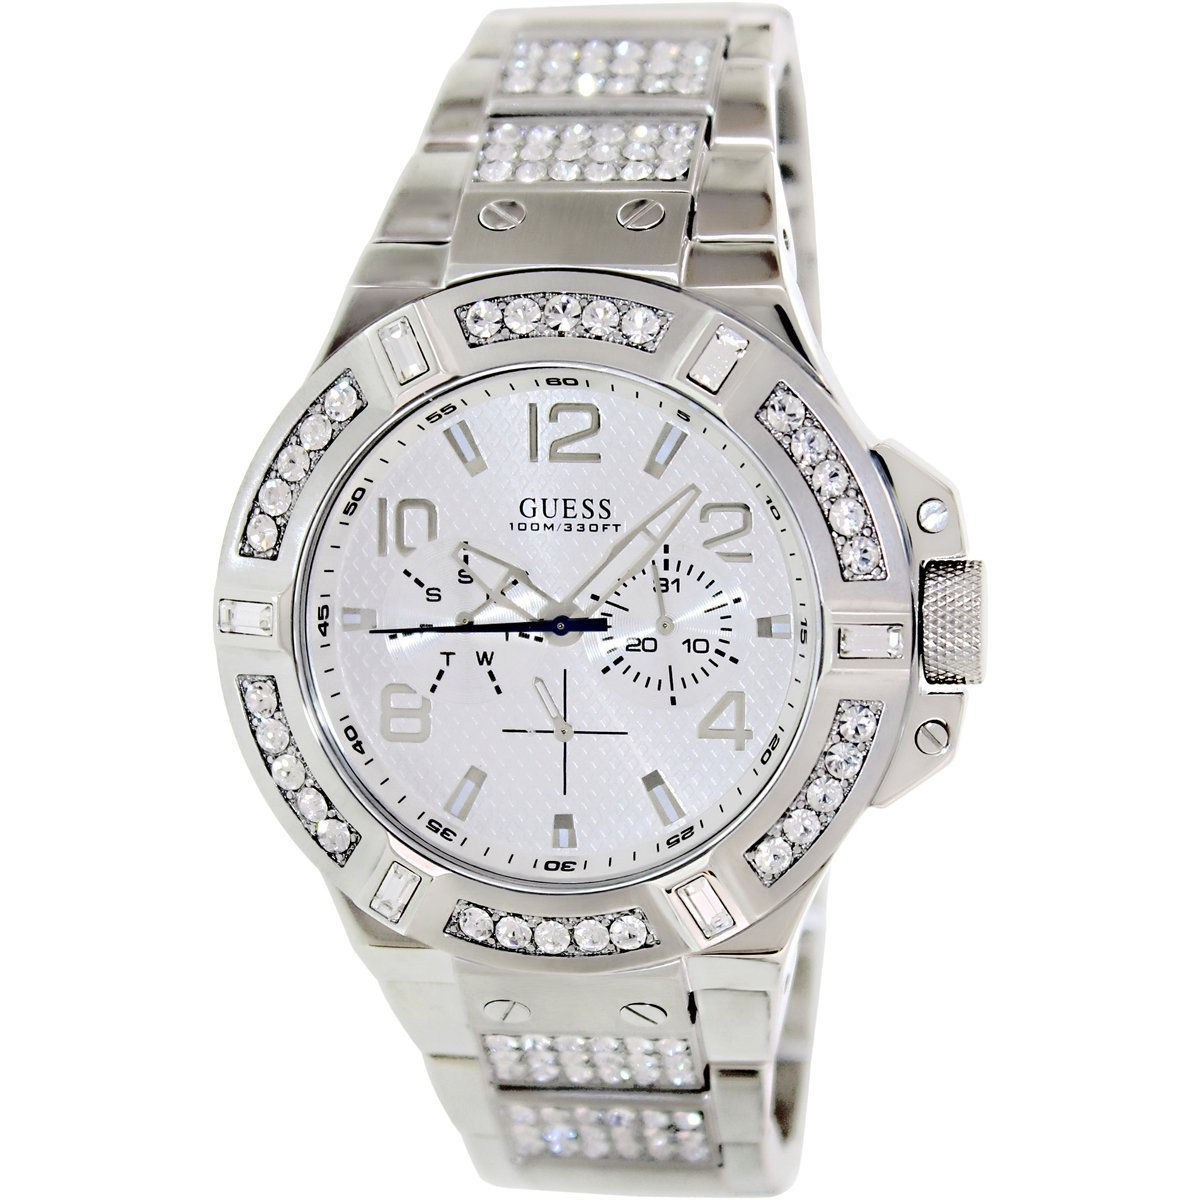 Guess Men's Rigor U0292G1 Silvertone Stainless Steel Quartz Watch with Silvertone Dial at Sears.com